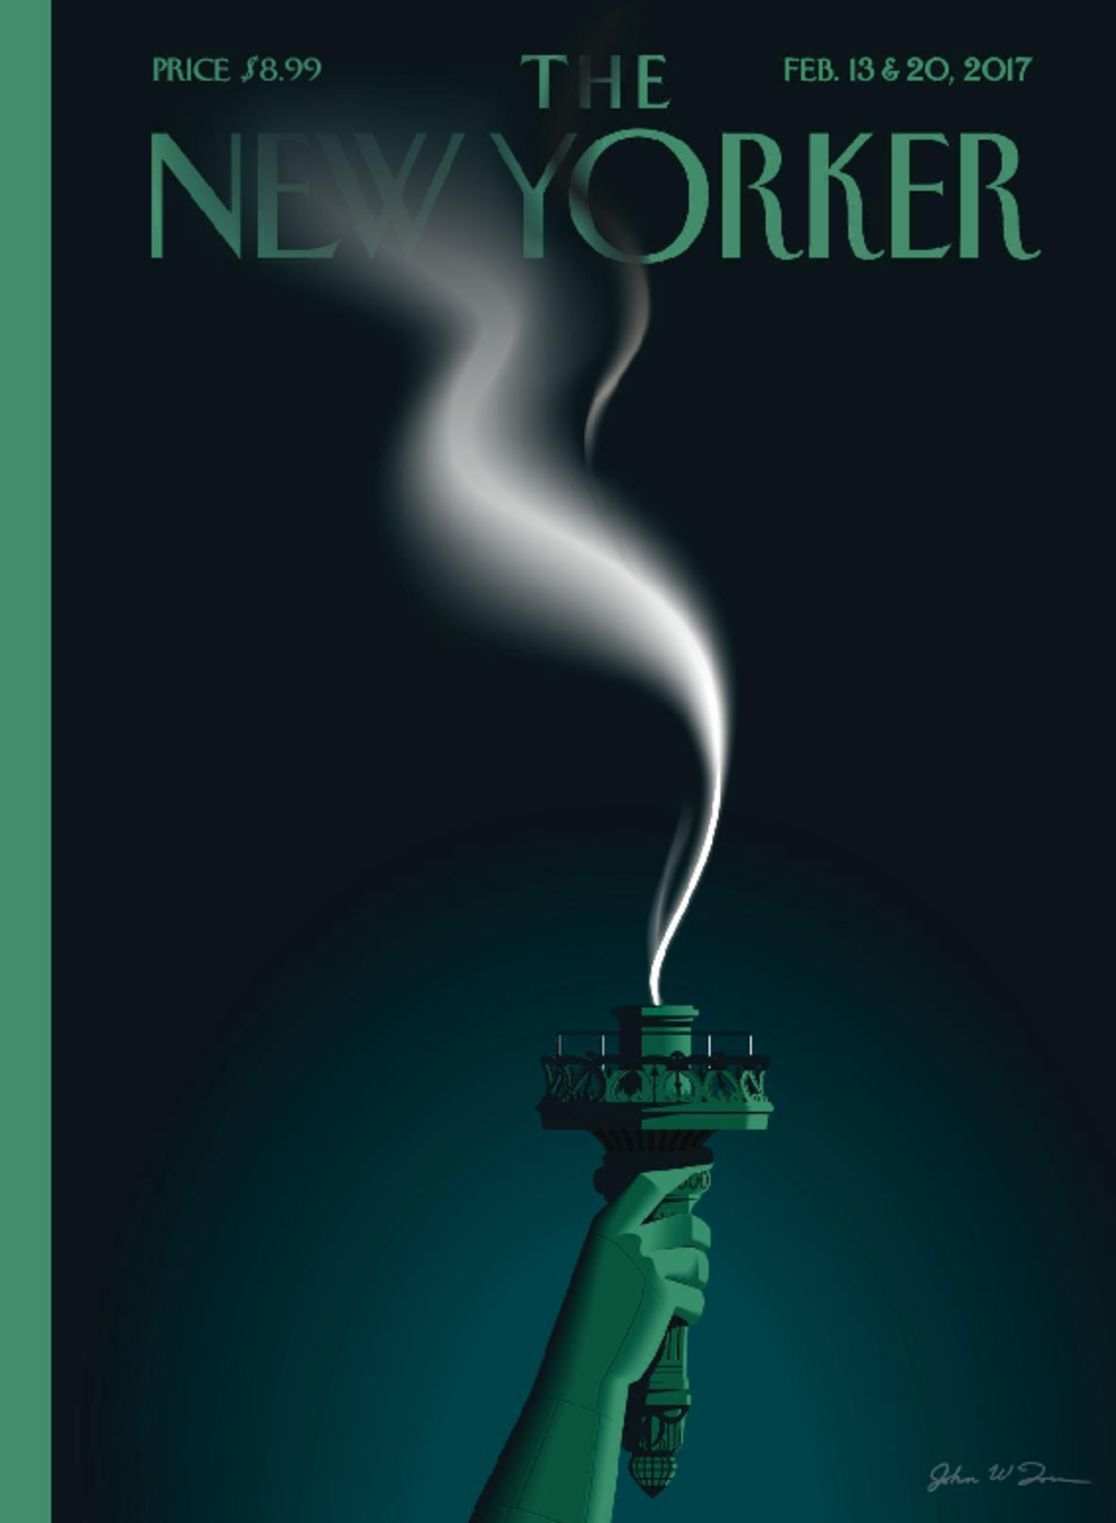 Subscribe to The New Yorker magazine and get the best rate, as well as offers for student and educators. Find info on renewals, newsletter subscriptions, and more. Find info on renewals, newsletter subscriptions, and more.